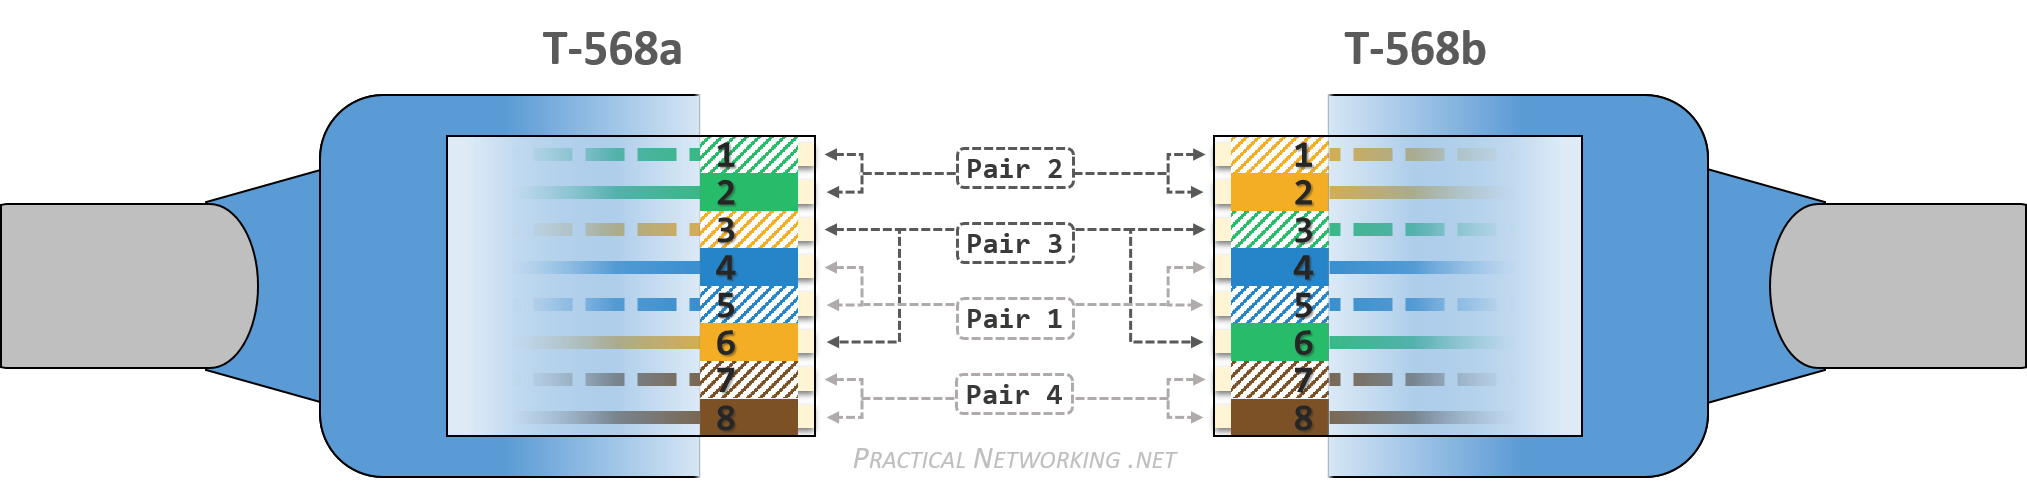 Ethernet A Wiring - Product Wiring Diagrams •